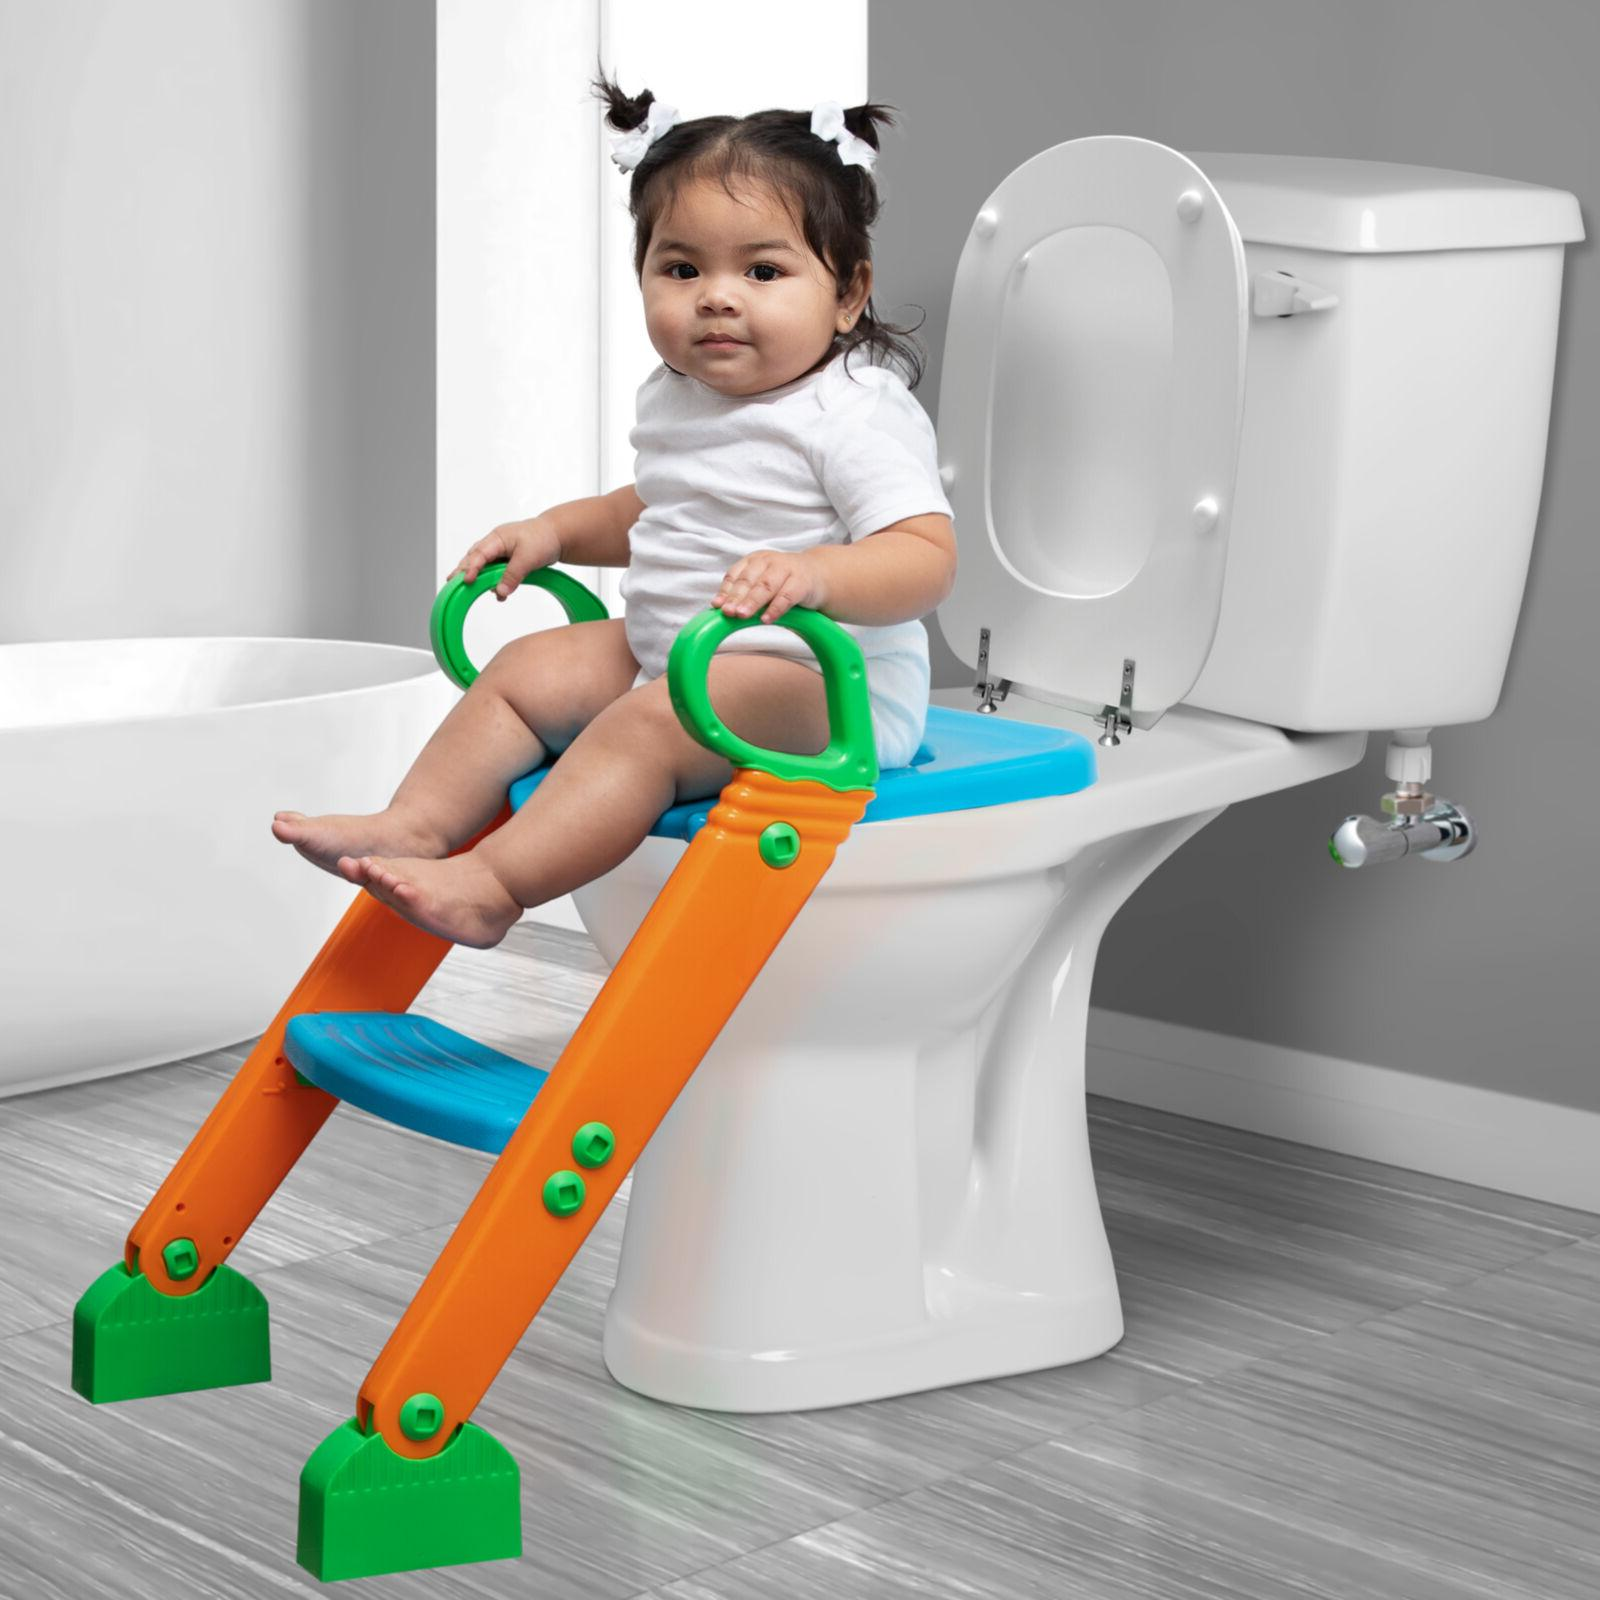 Kids Seat with Step Stool for Child Chair